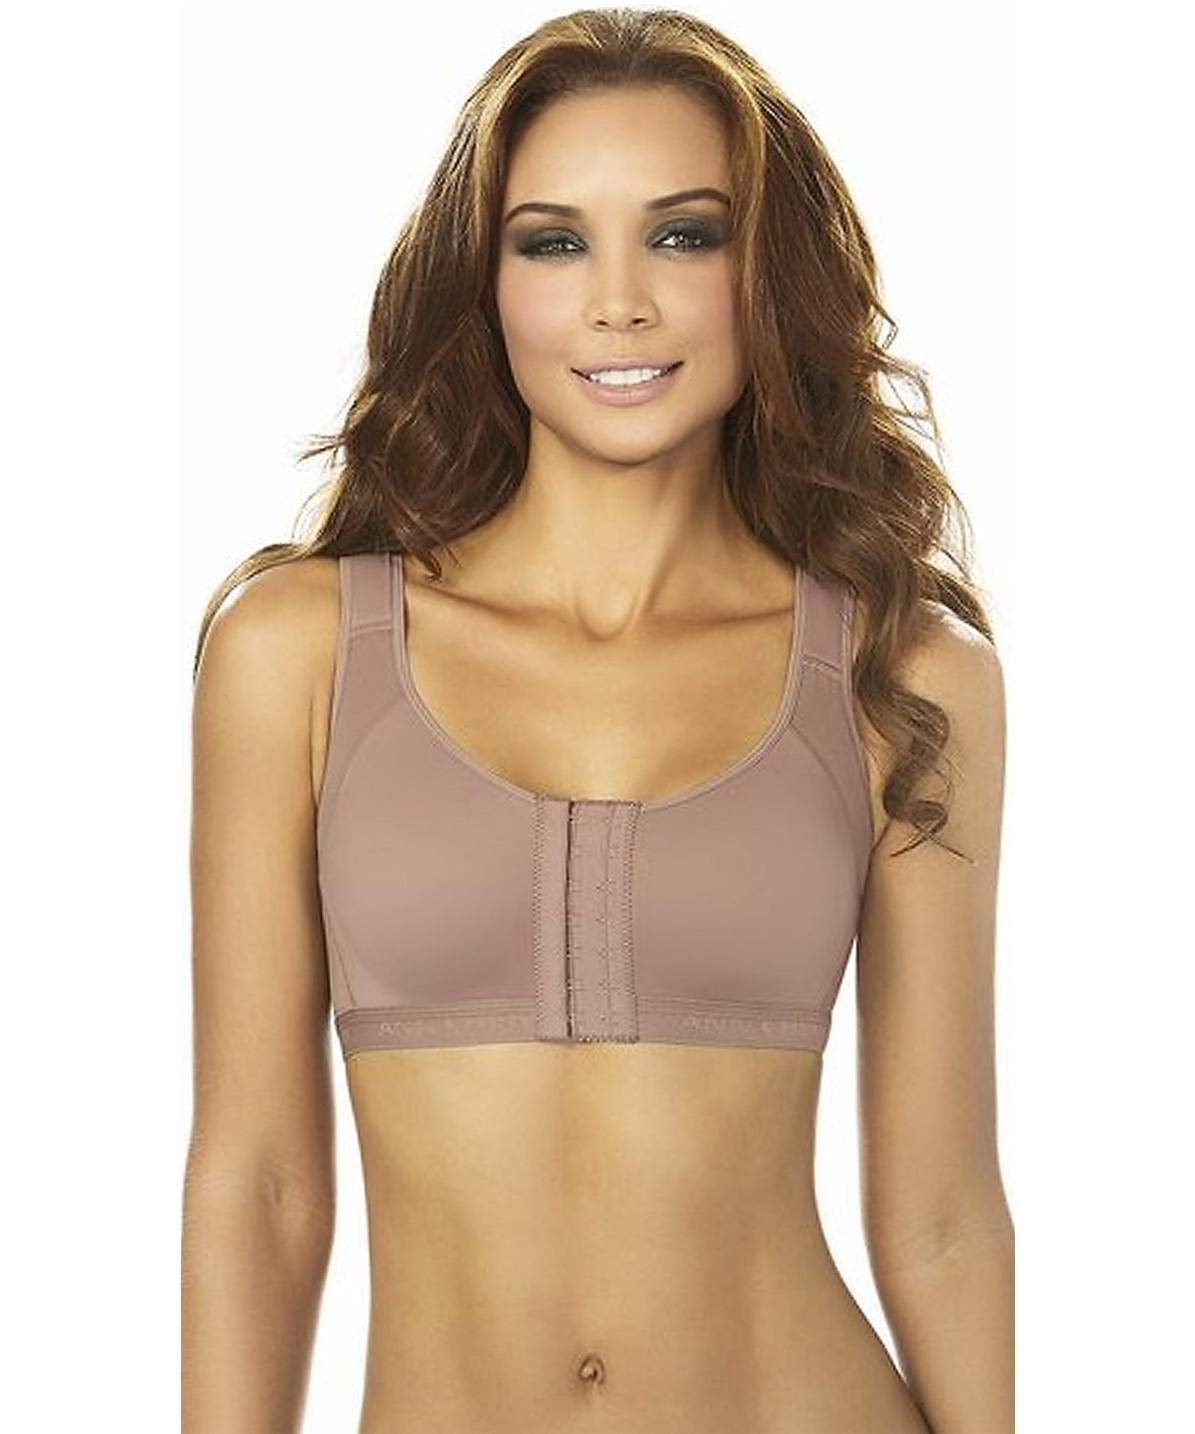 Ann Chery 5130 Post Surgery Bra Surgical Operatory Brassier Brown (Large) by Ann Chery